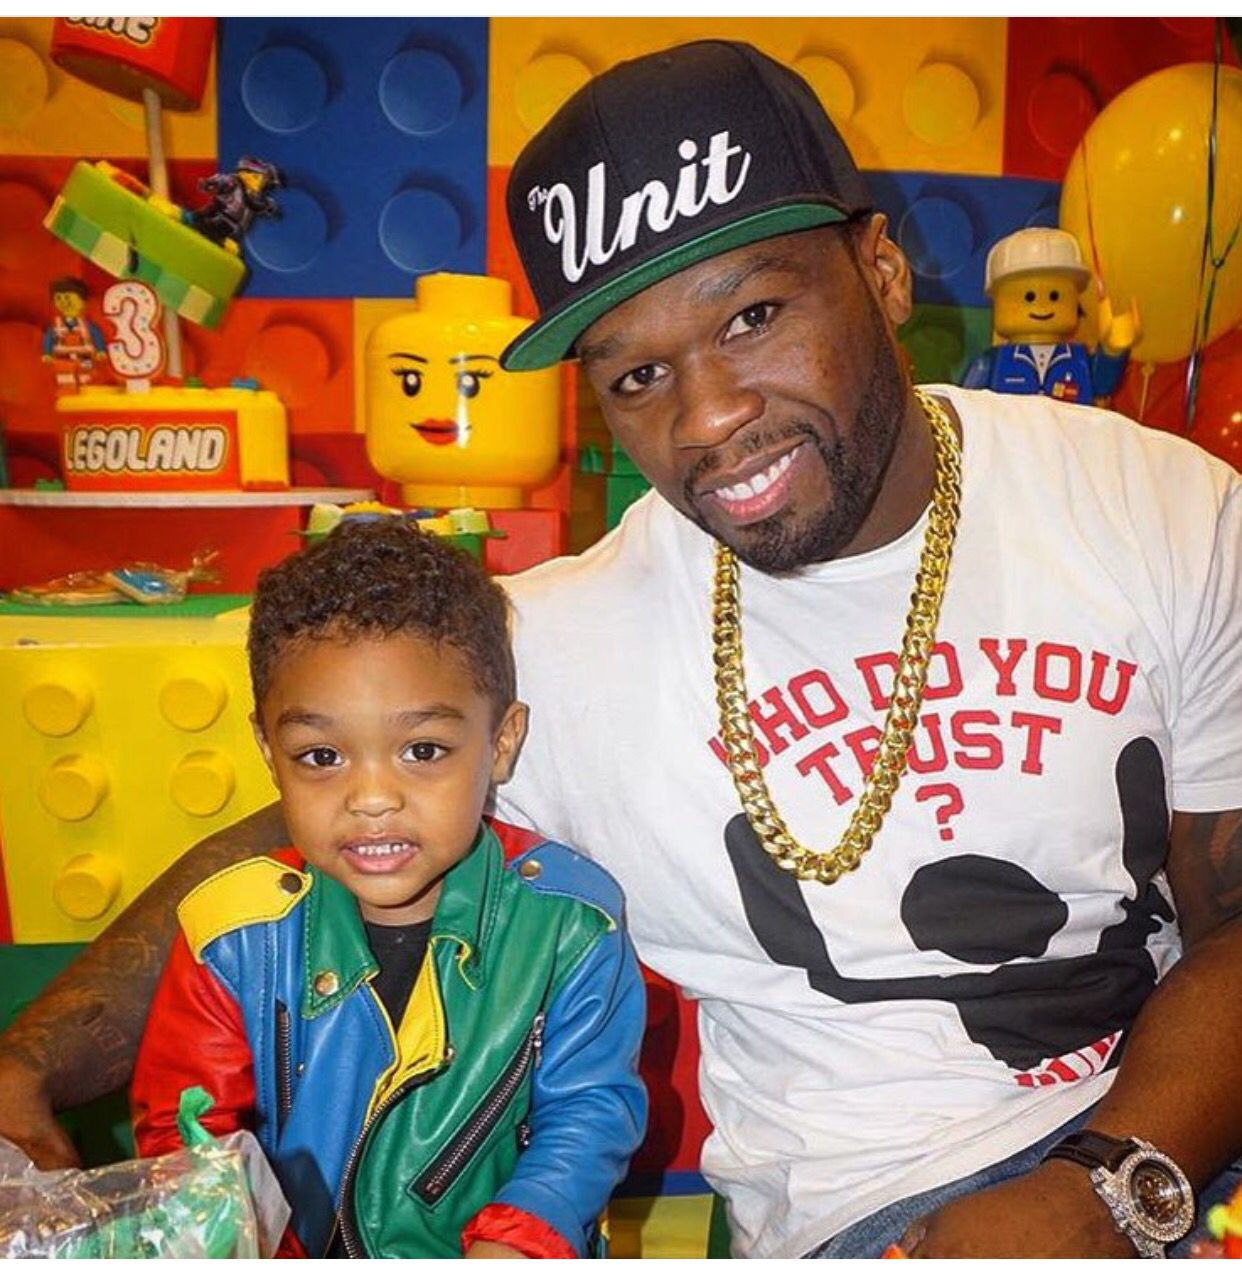 50cent His Son With Images Celebrities Kids Party Wear